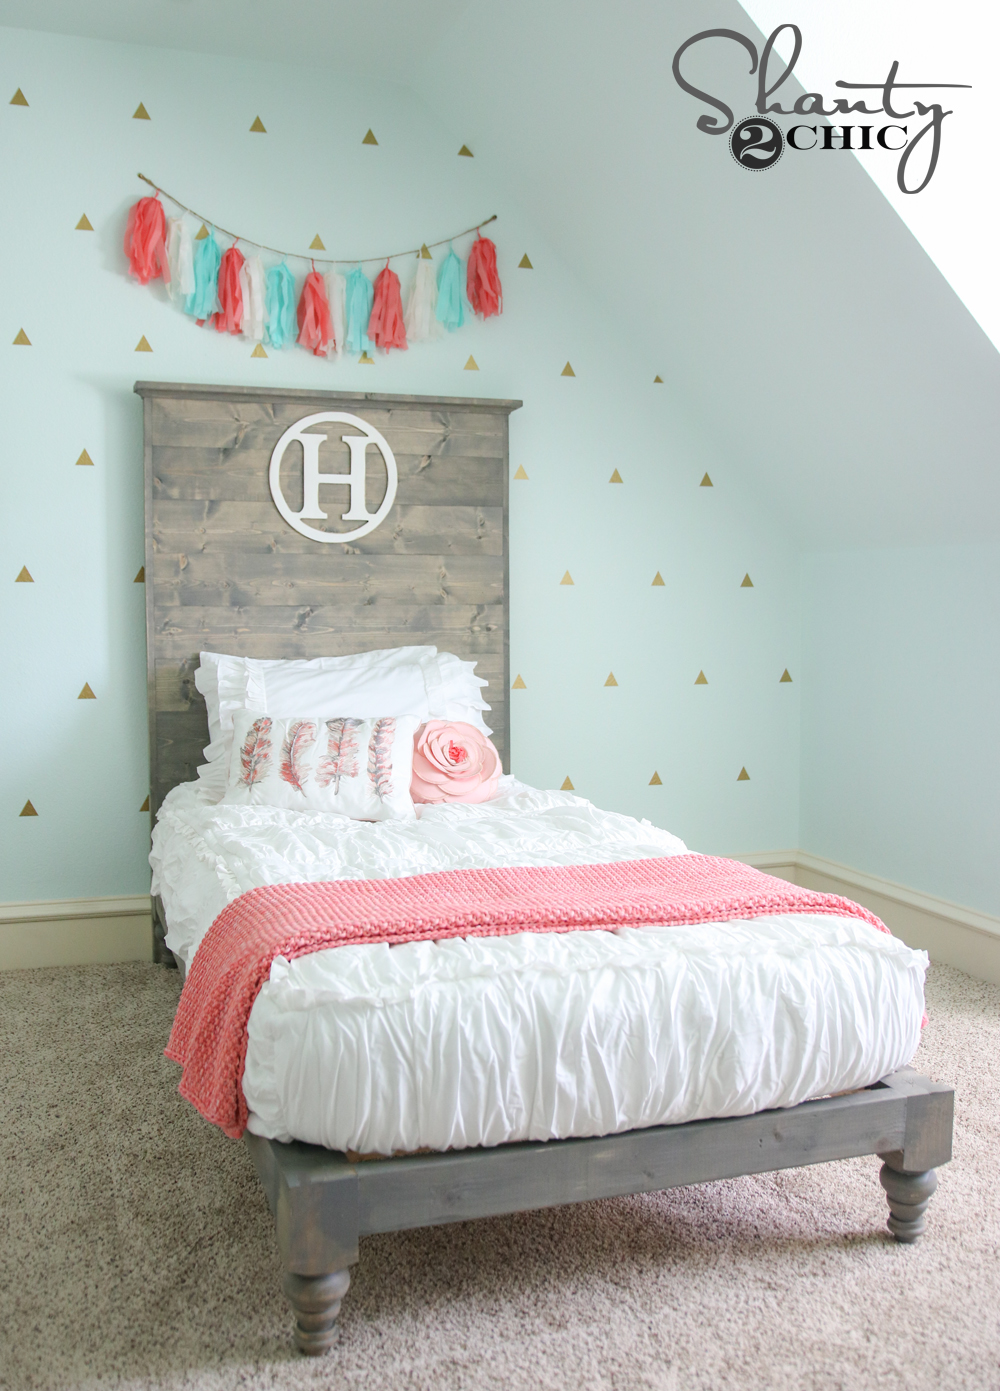 Shanty2Chic DIY Twin Bed